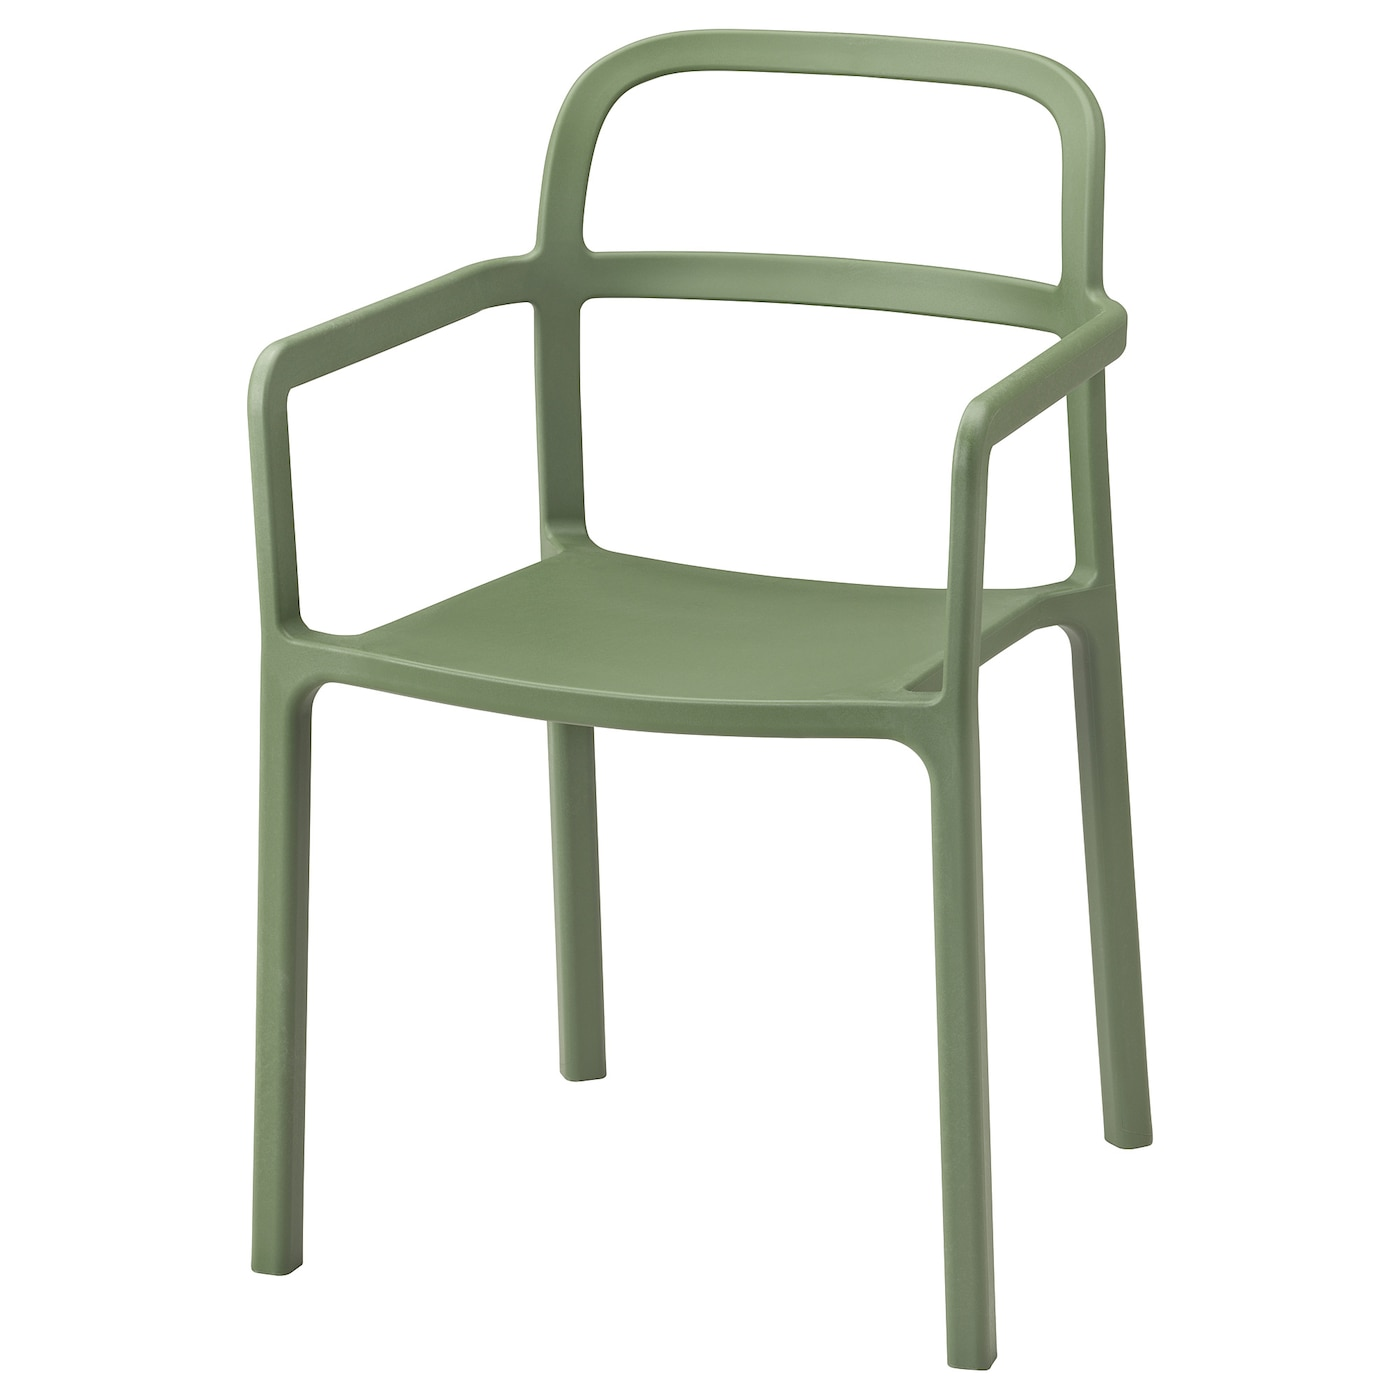 YPPERLIG Chair with armrests in outdoor Green IKEA